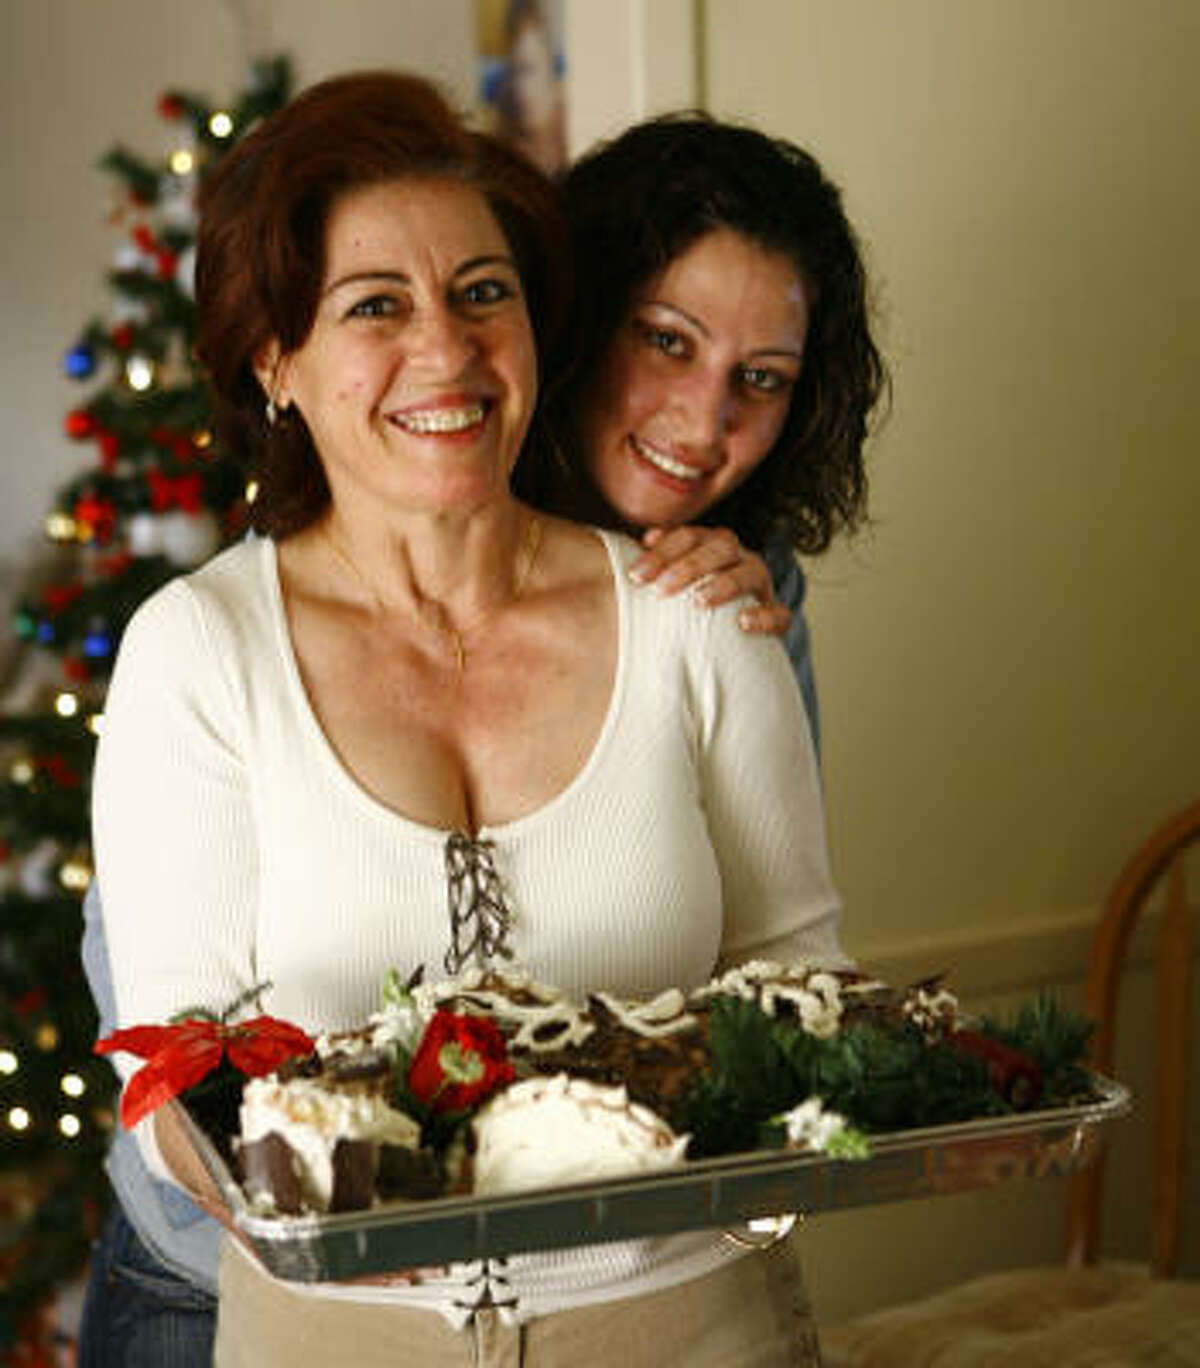 Mary'z Mediterranean Cuisine owner Mary Fakhoury, left, and daughter Mira enjoy decorating both home and dessert for the holidays. Bûche de Noël, a simple cake, is cut and decorated to resemble a tree trunk.